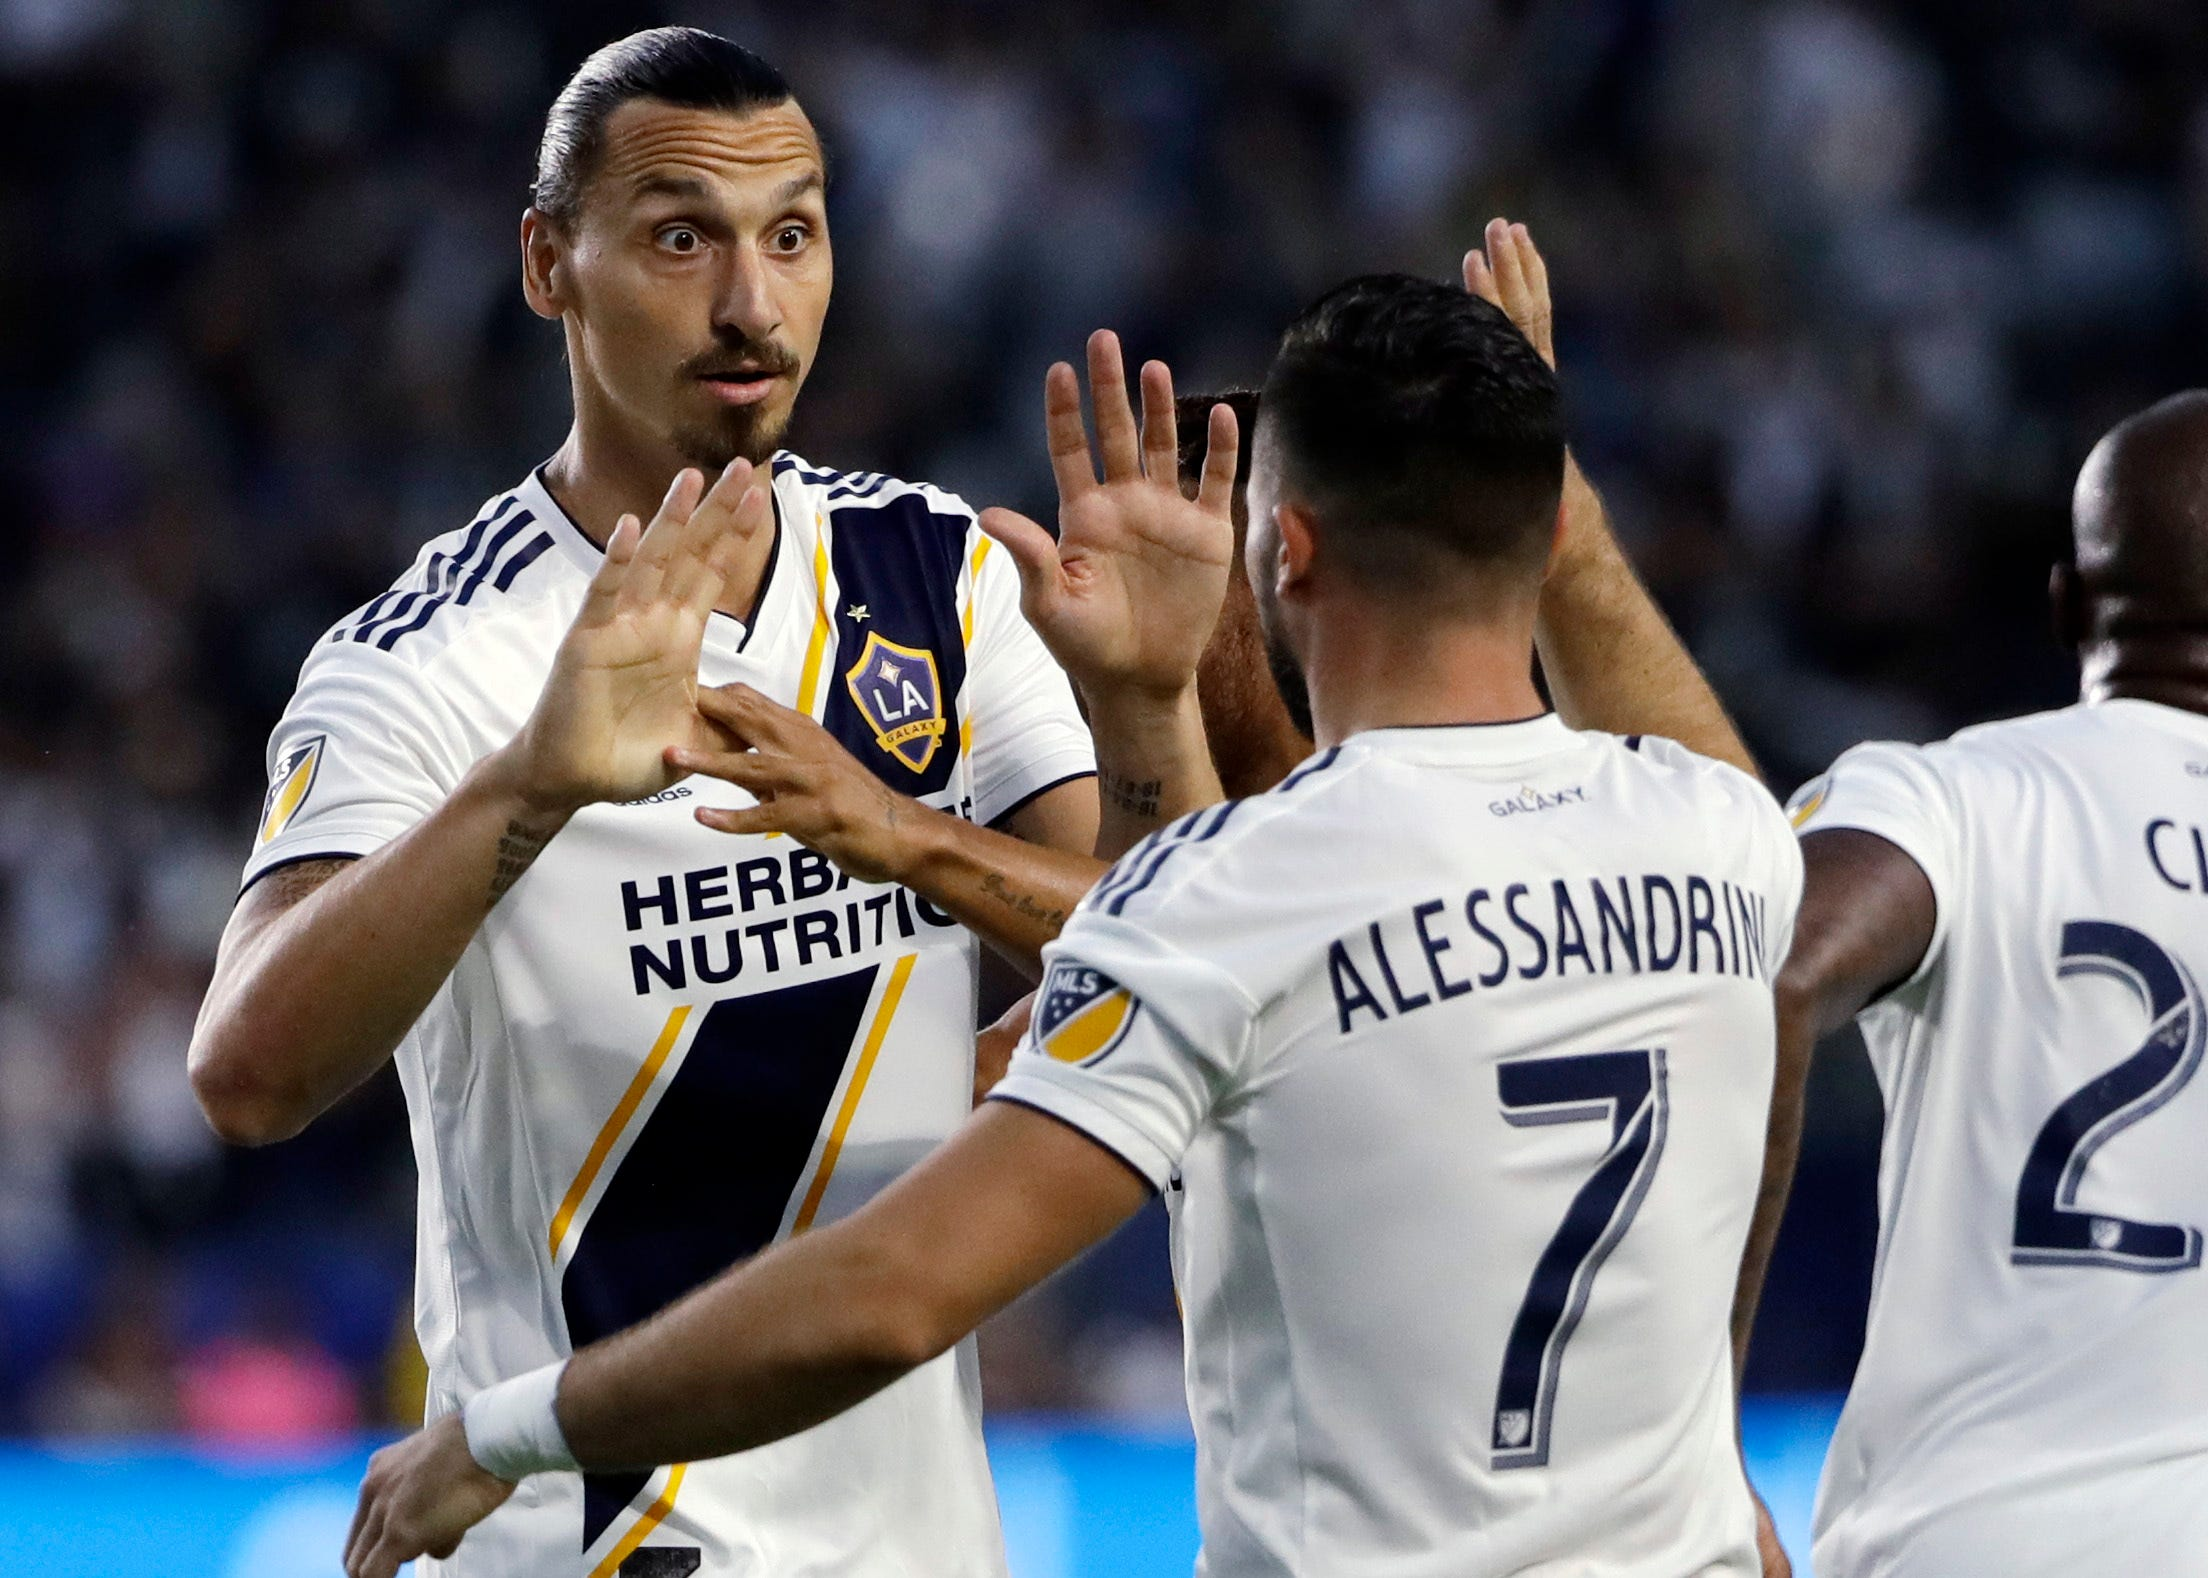 Ibarra's late goal gives Minnesota United 2-2 draw at Galaxy